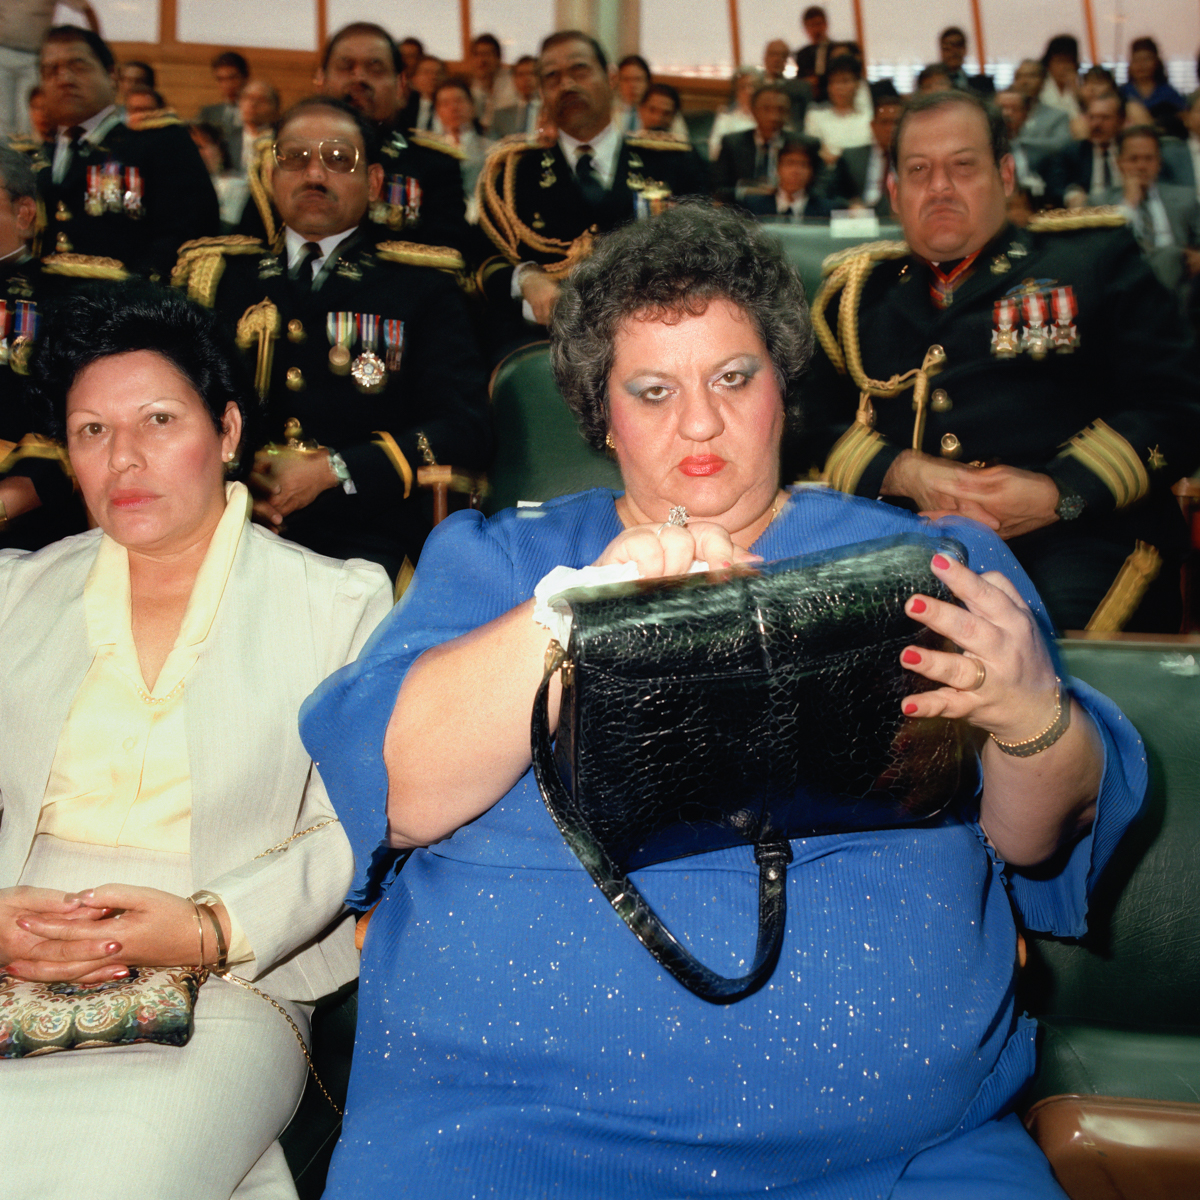 The General's Wife, Honduras 1987